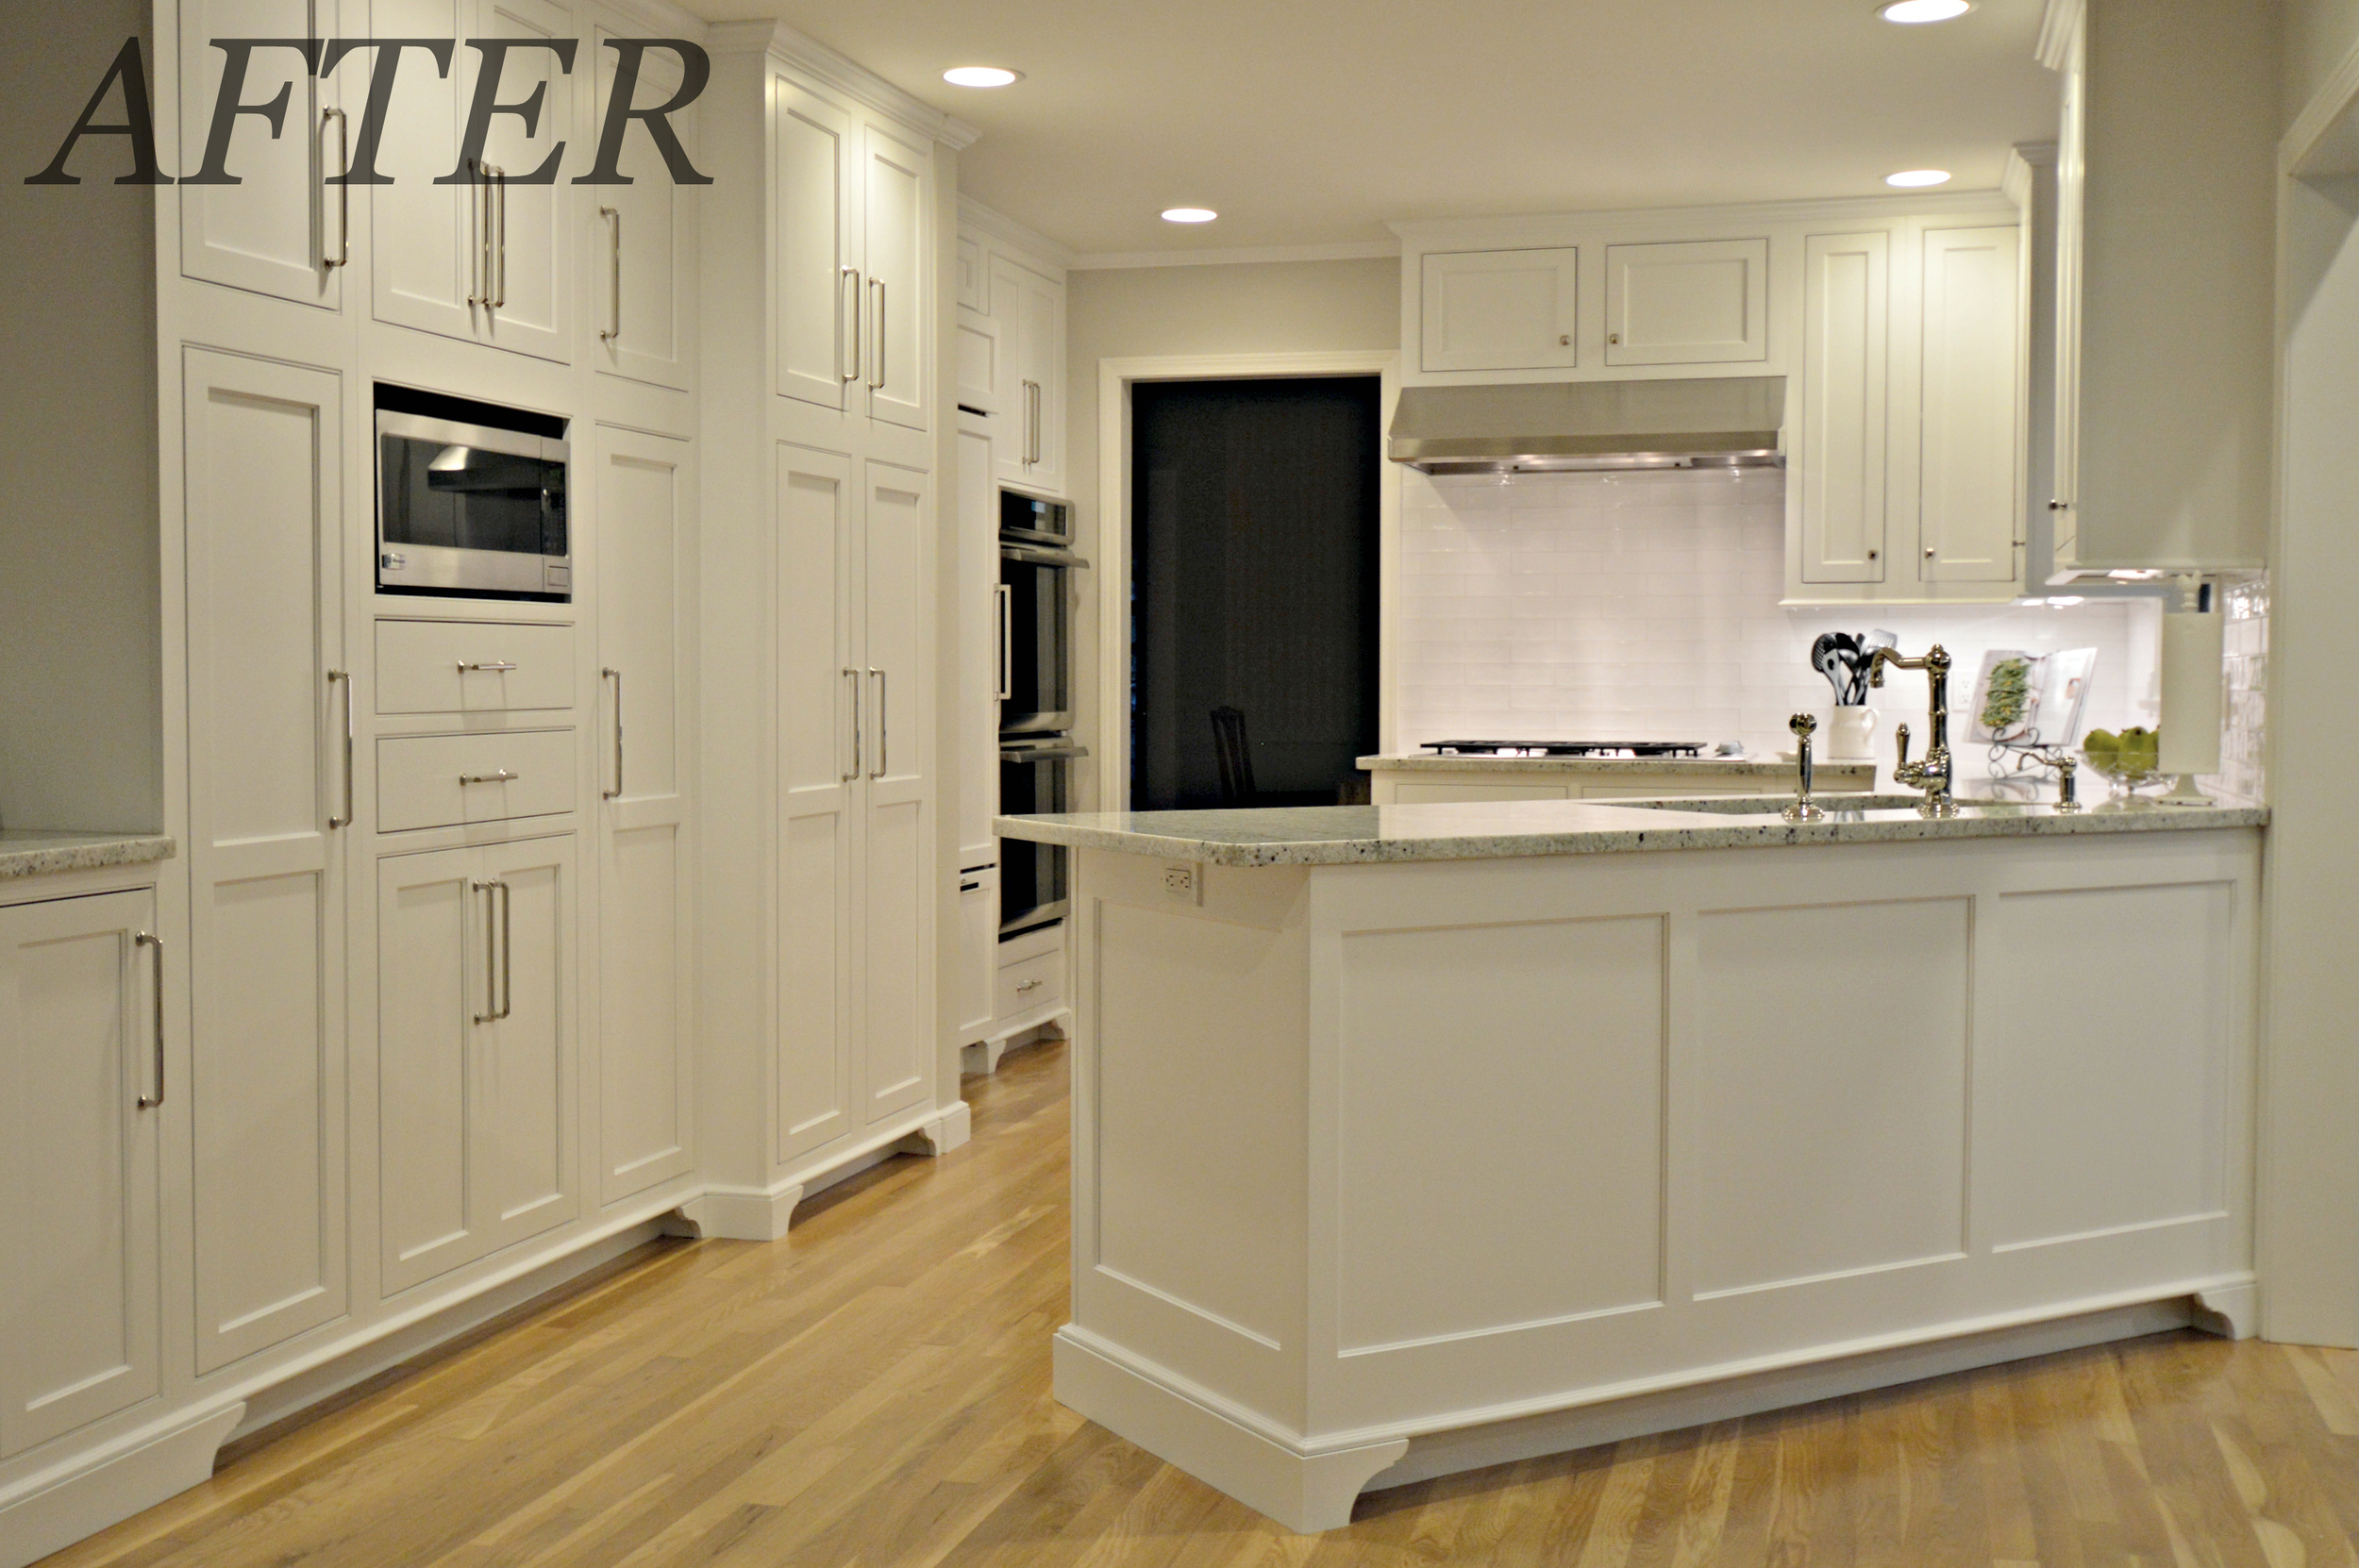 Ackley Cabinet - White Kitchen After Photo